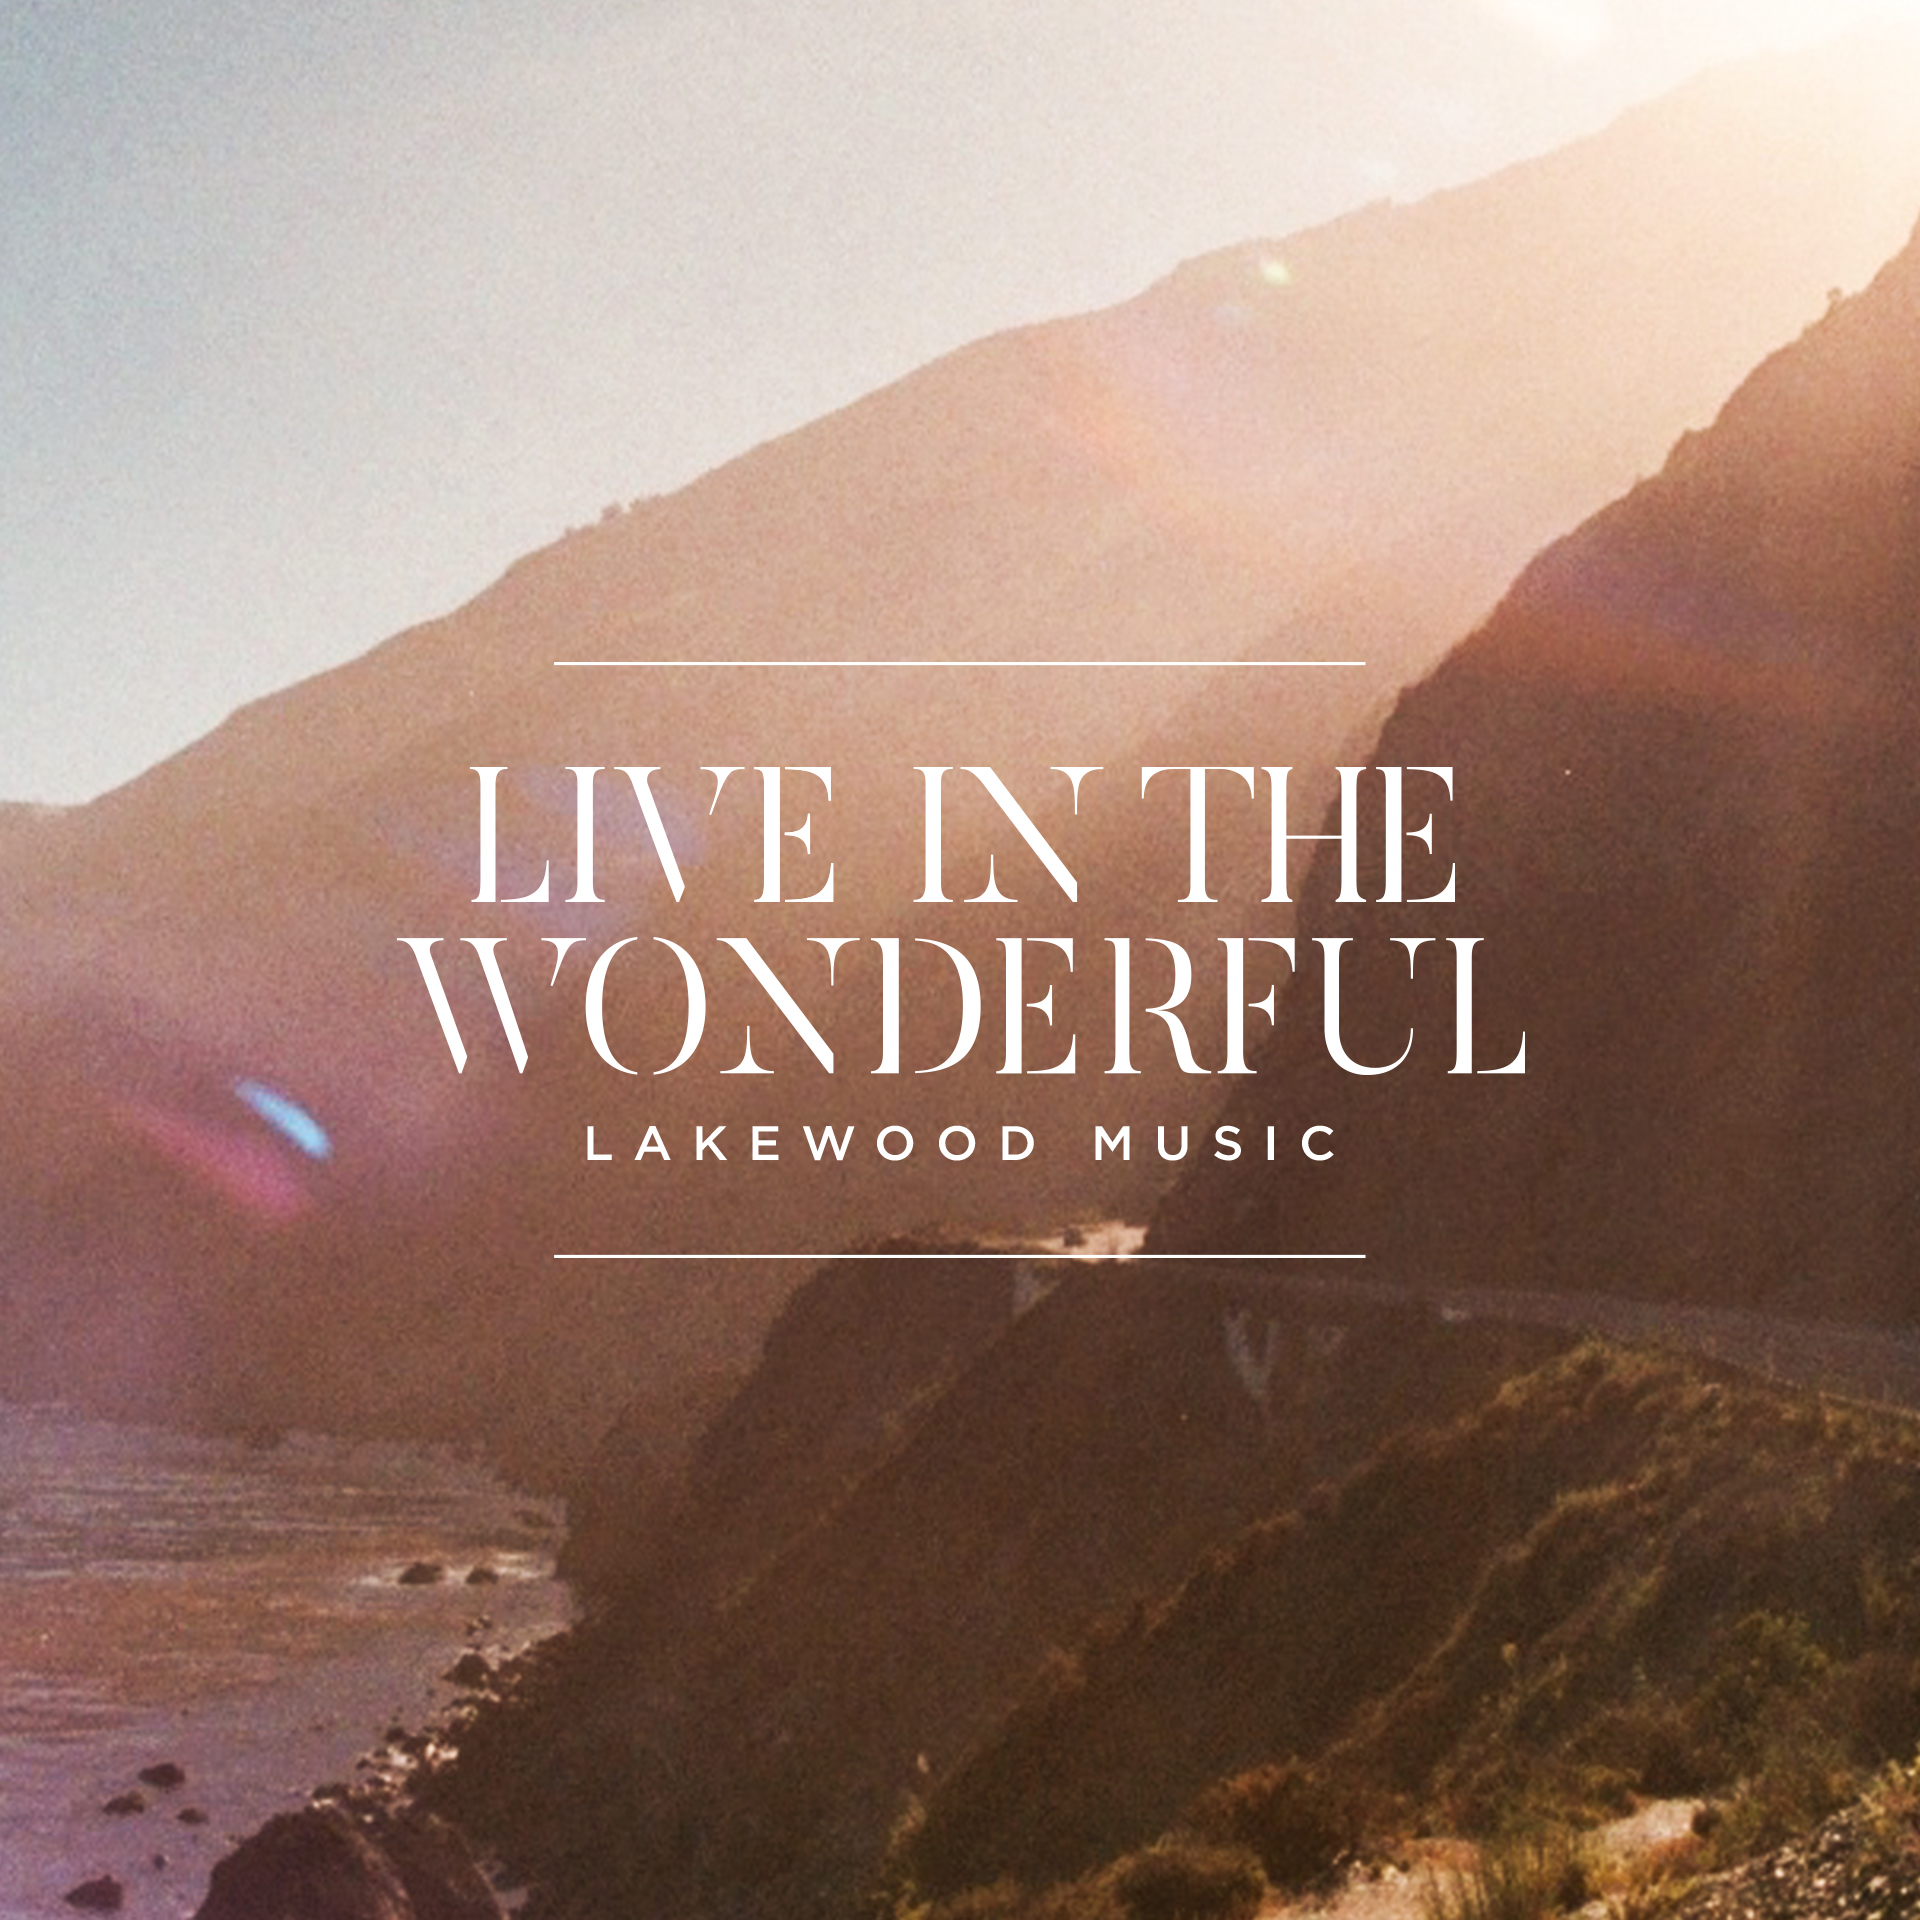 tlg-christian-news-music-live-in-the-wonderful--single-by-lakewood-music-cover16737